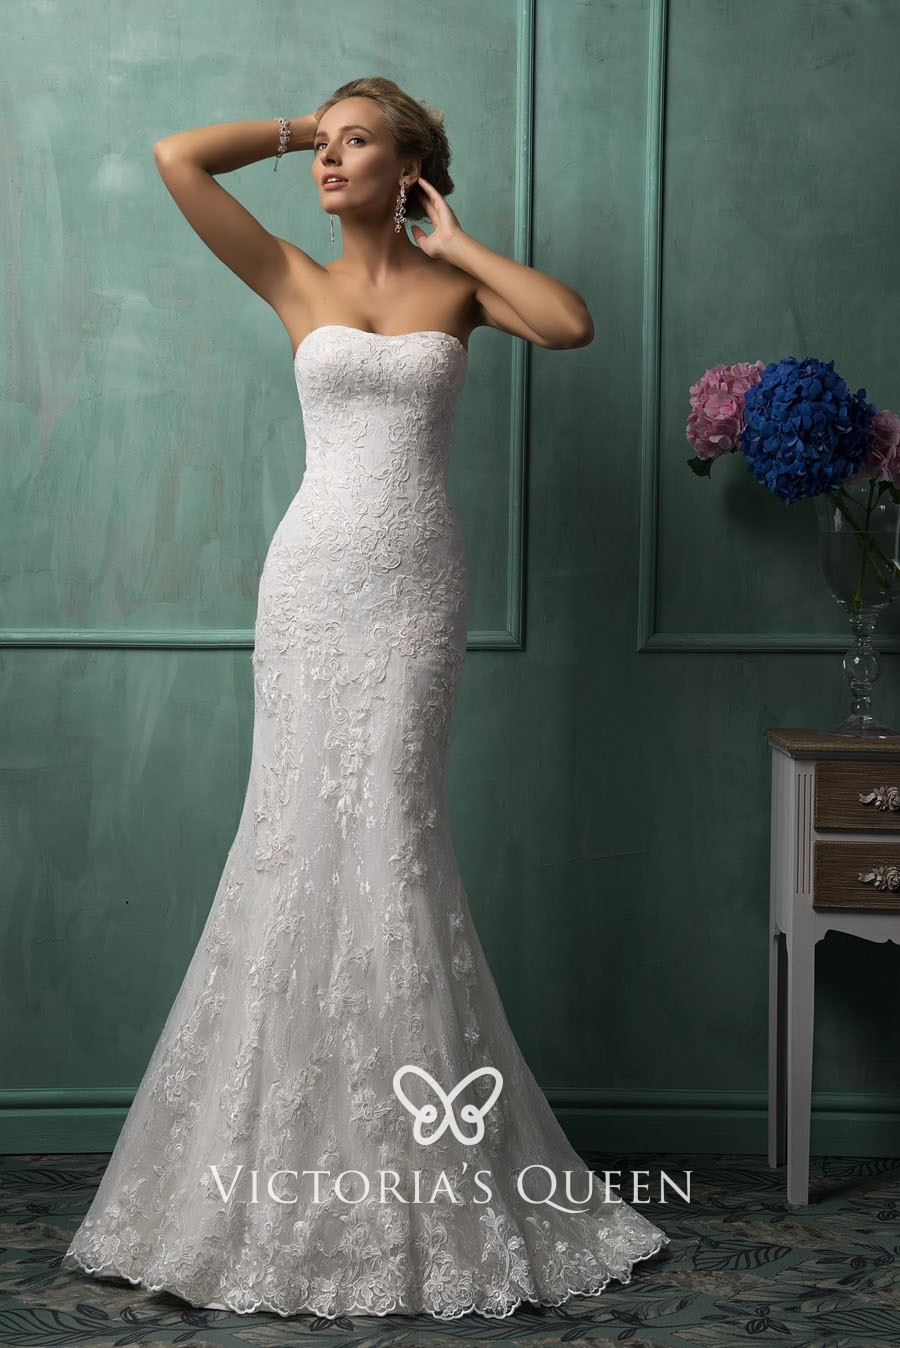 Simple Off White Lace Strapless Mermaid Wedding Dress